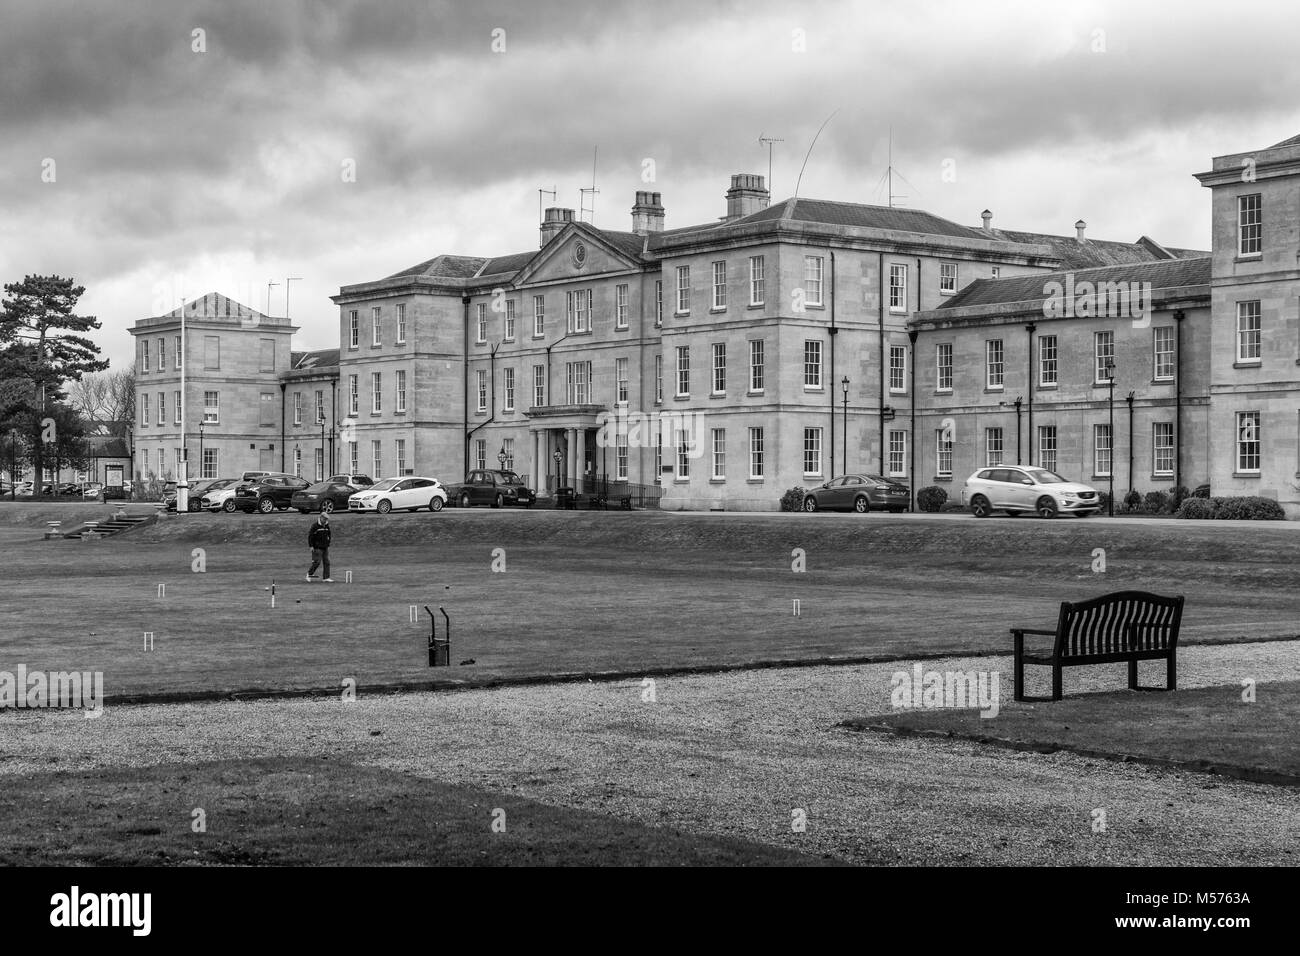 The frontage of St Andrews Hospital, a psychiatric hospital run by St Andrews Healthcare; Northampton, UK - Stock Image